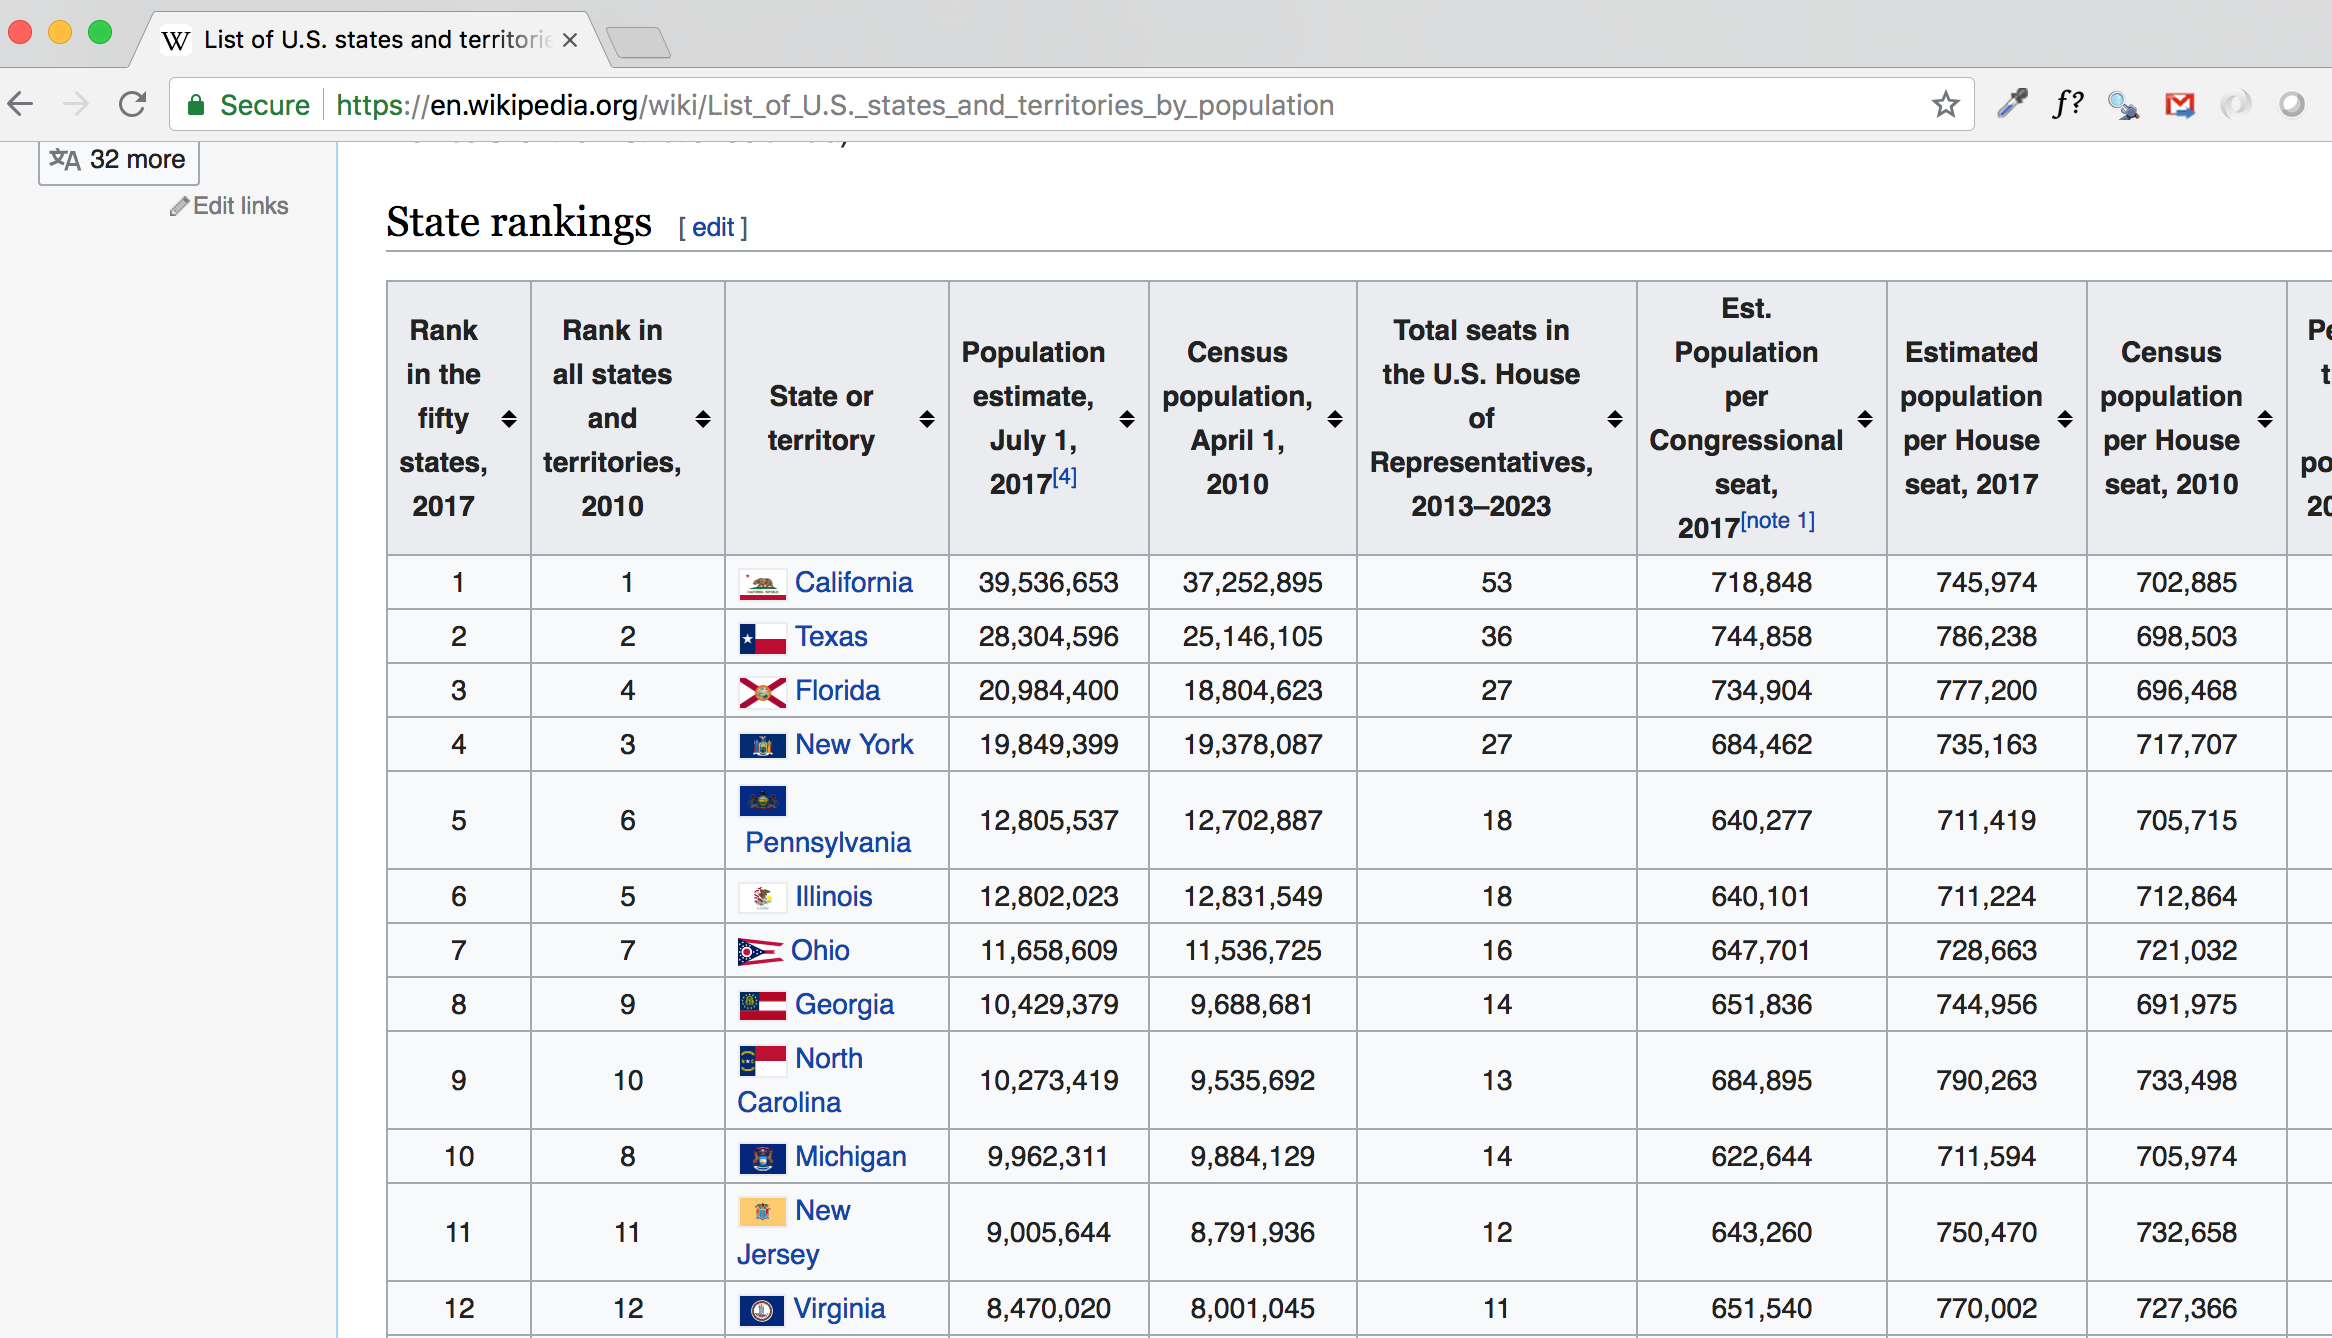 Scraping Data from Wikipedia Page and Cleaning Up - learn